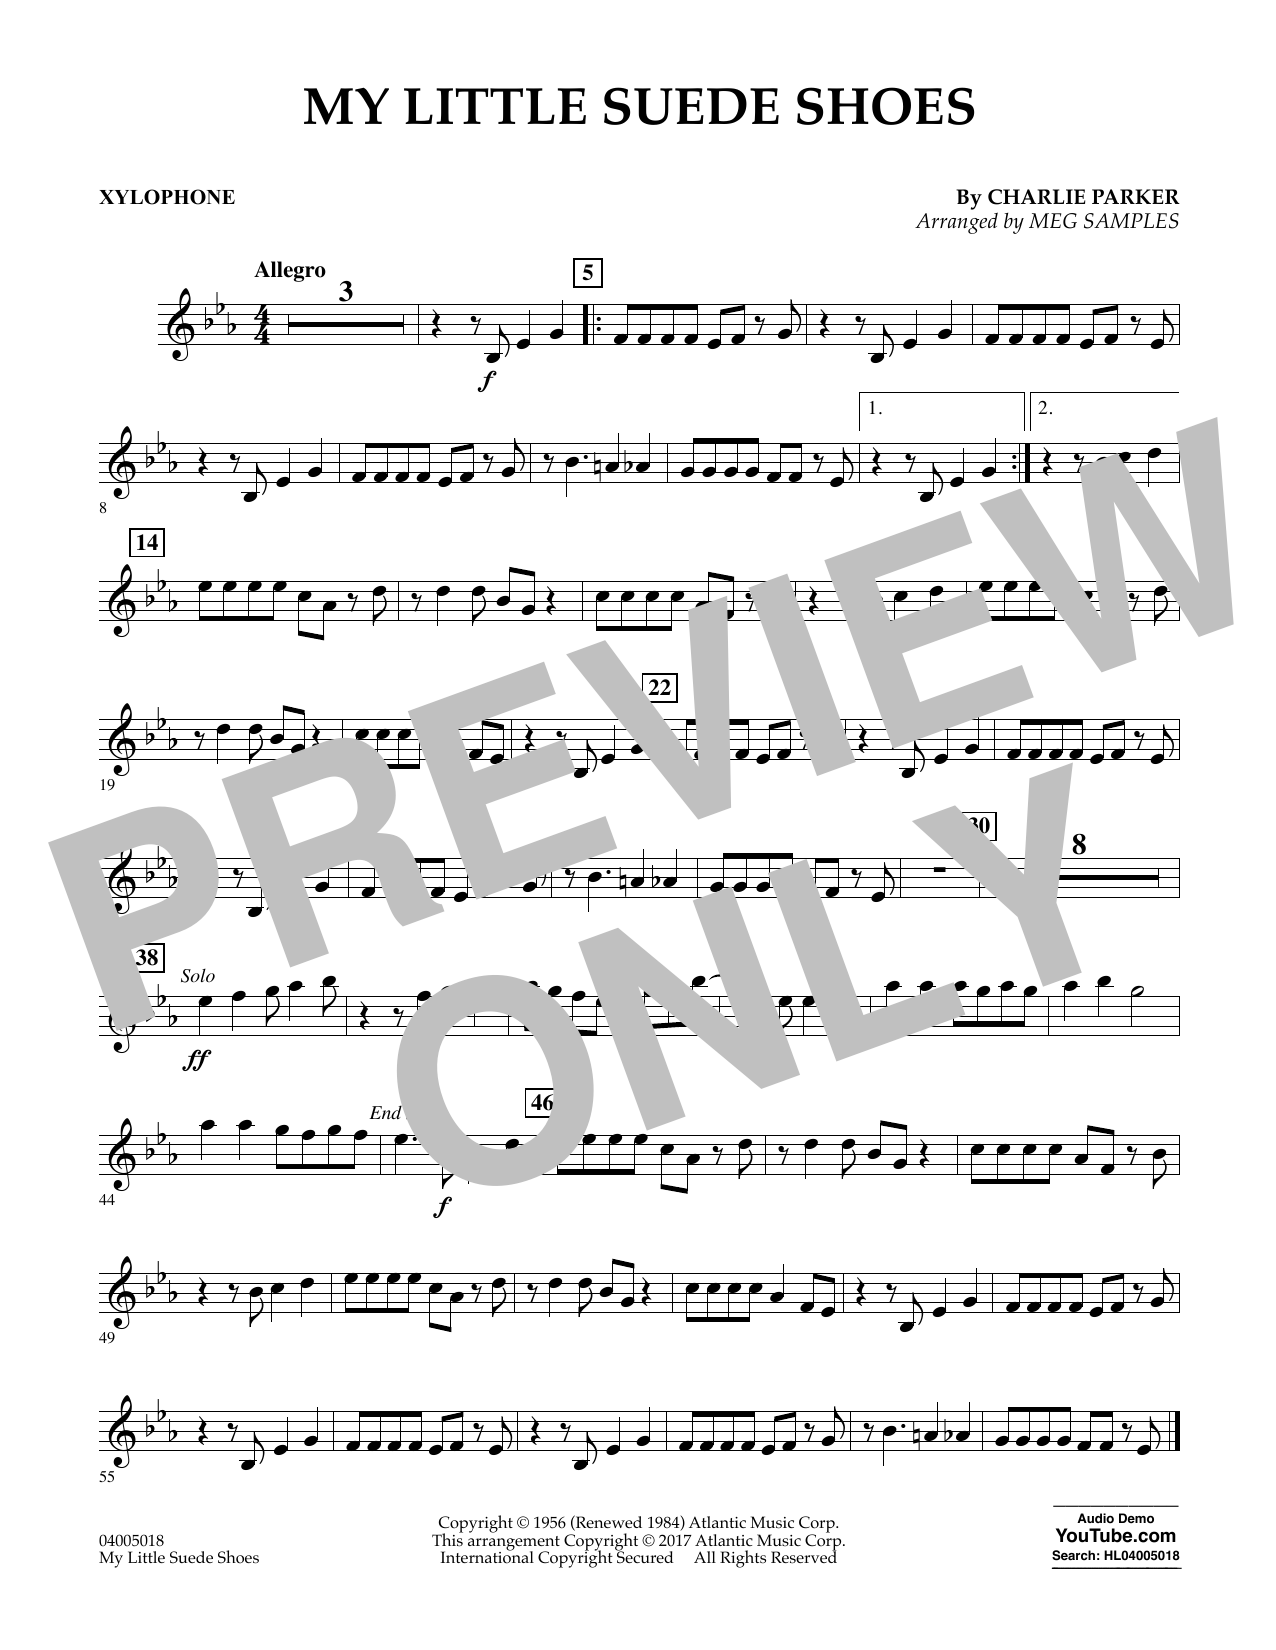 My Little Suede Shoes - Xylophone Sheet Music